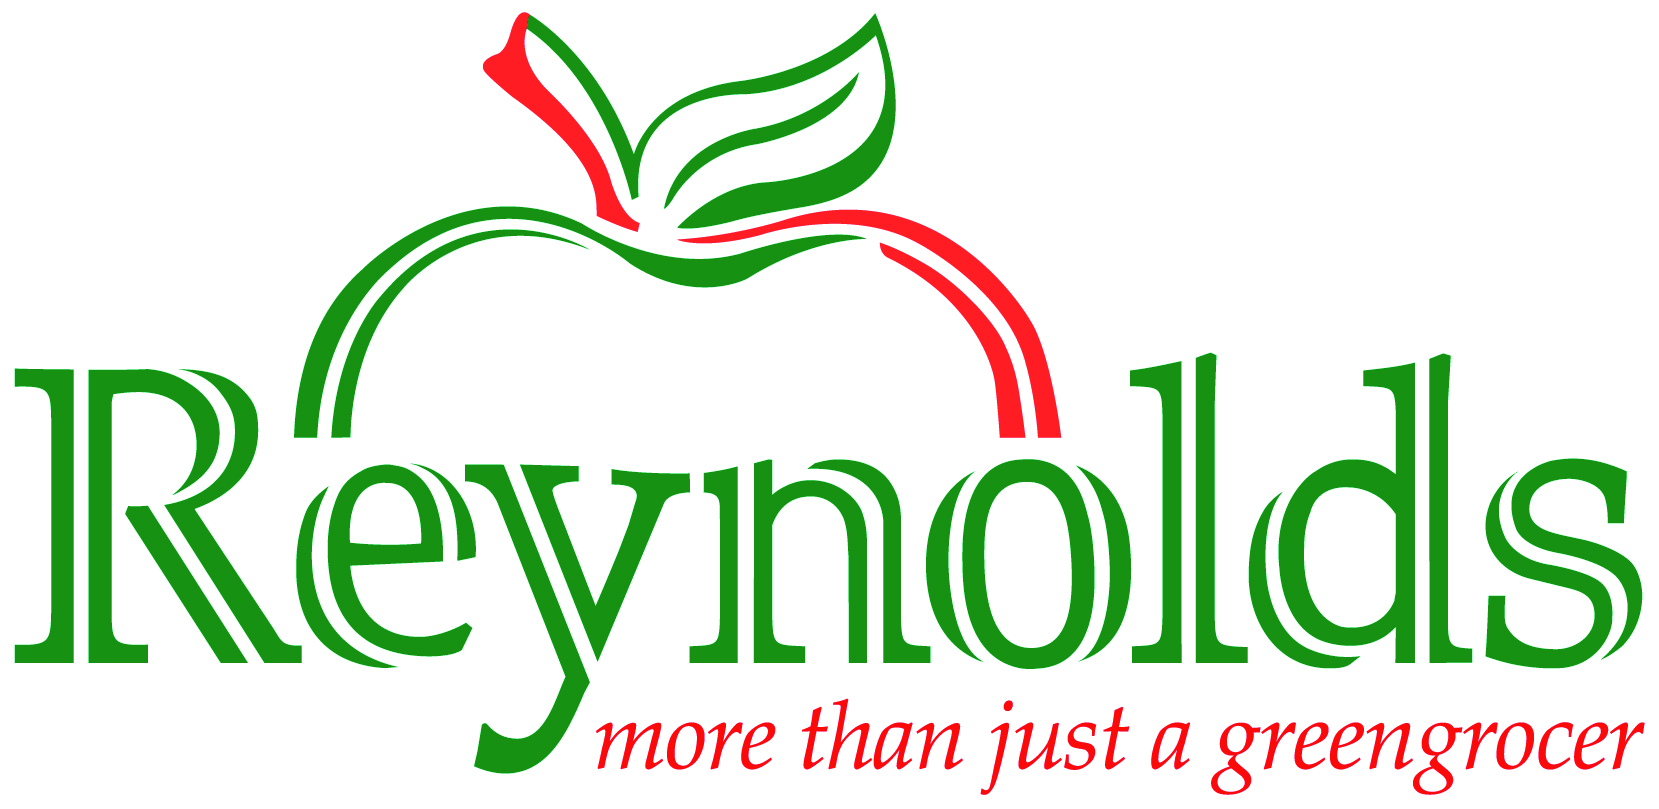 Reynolds Catering Supplies